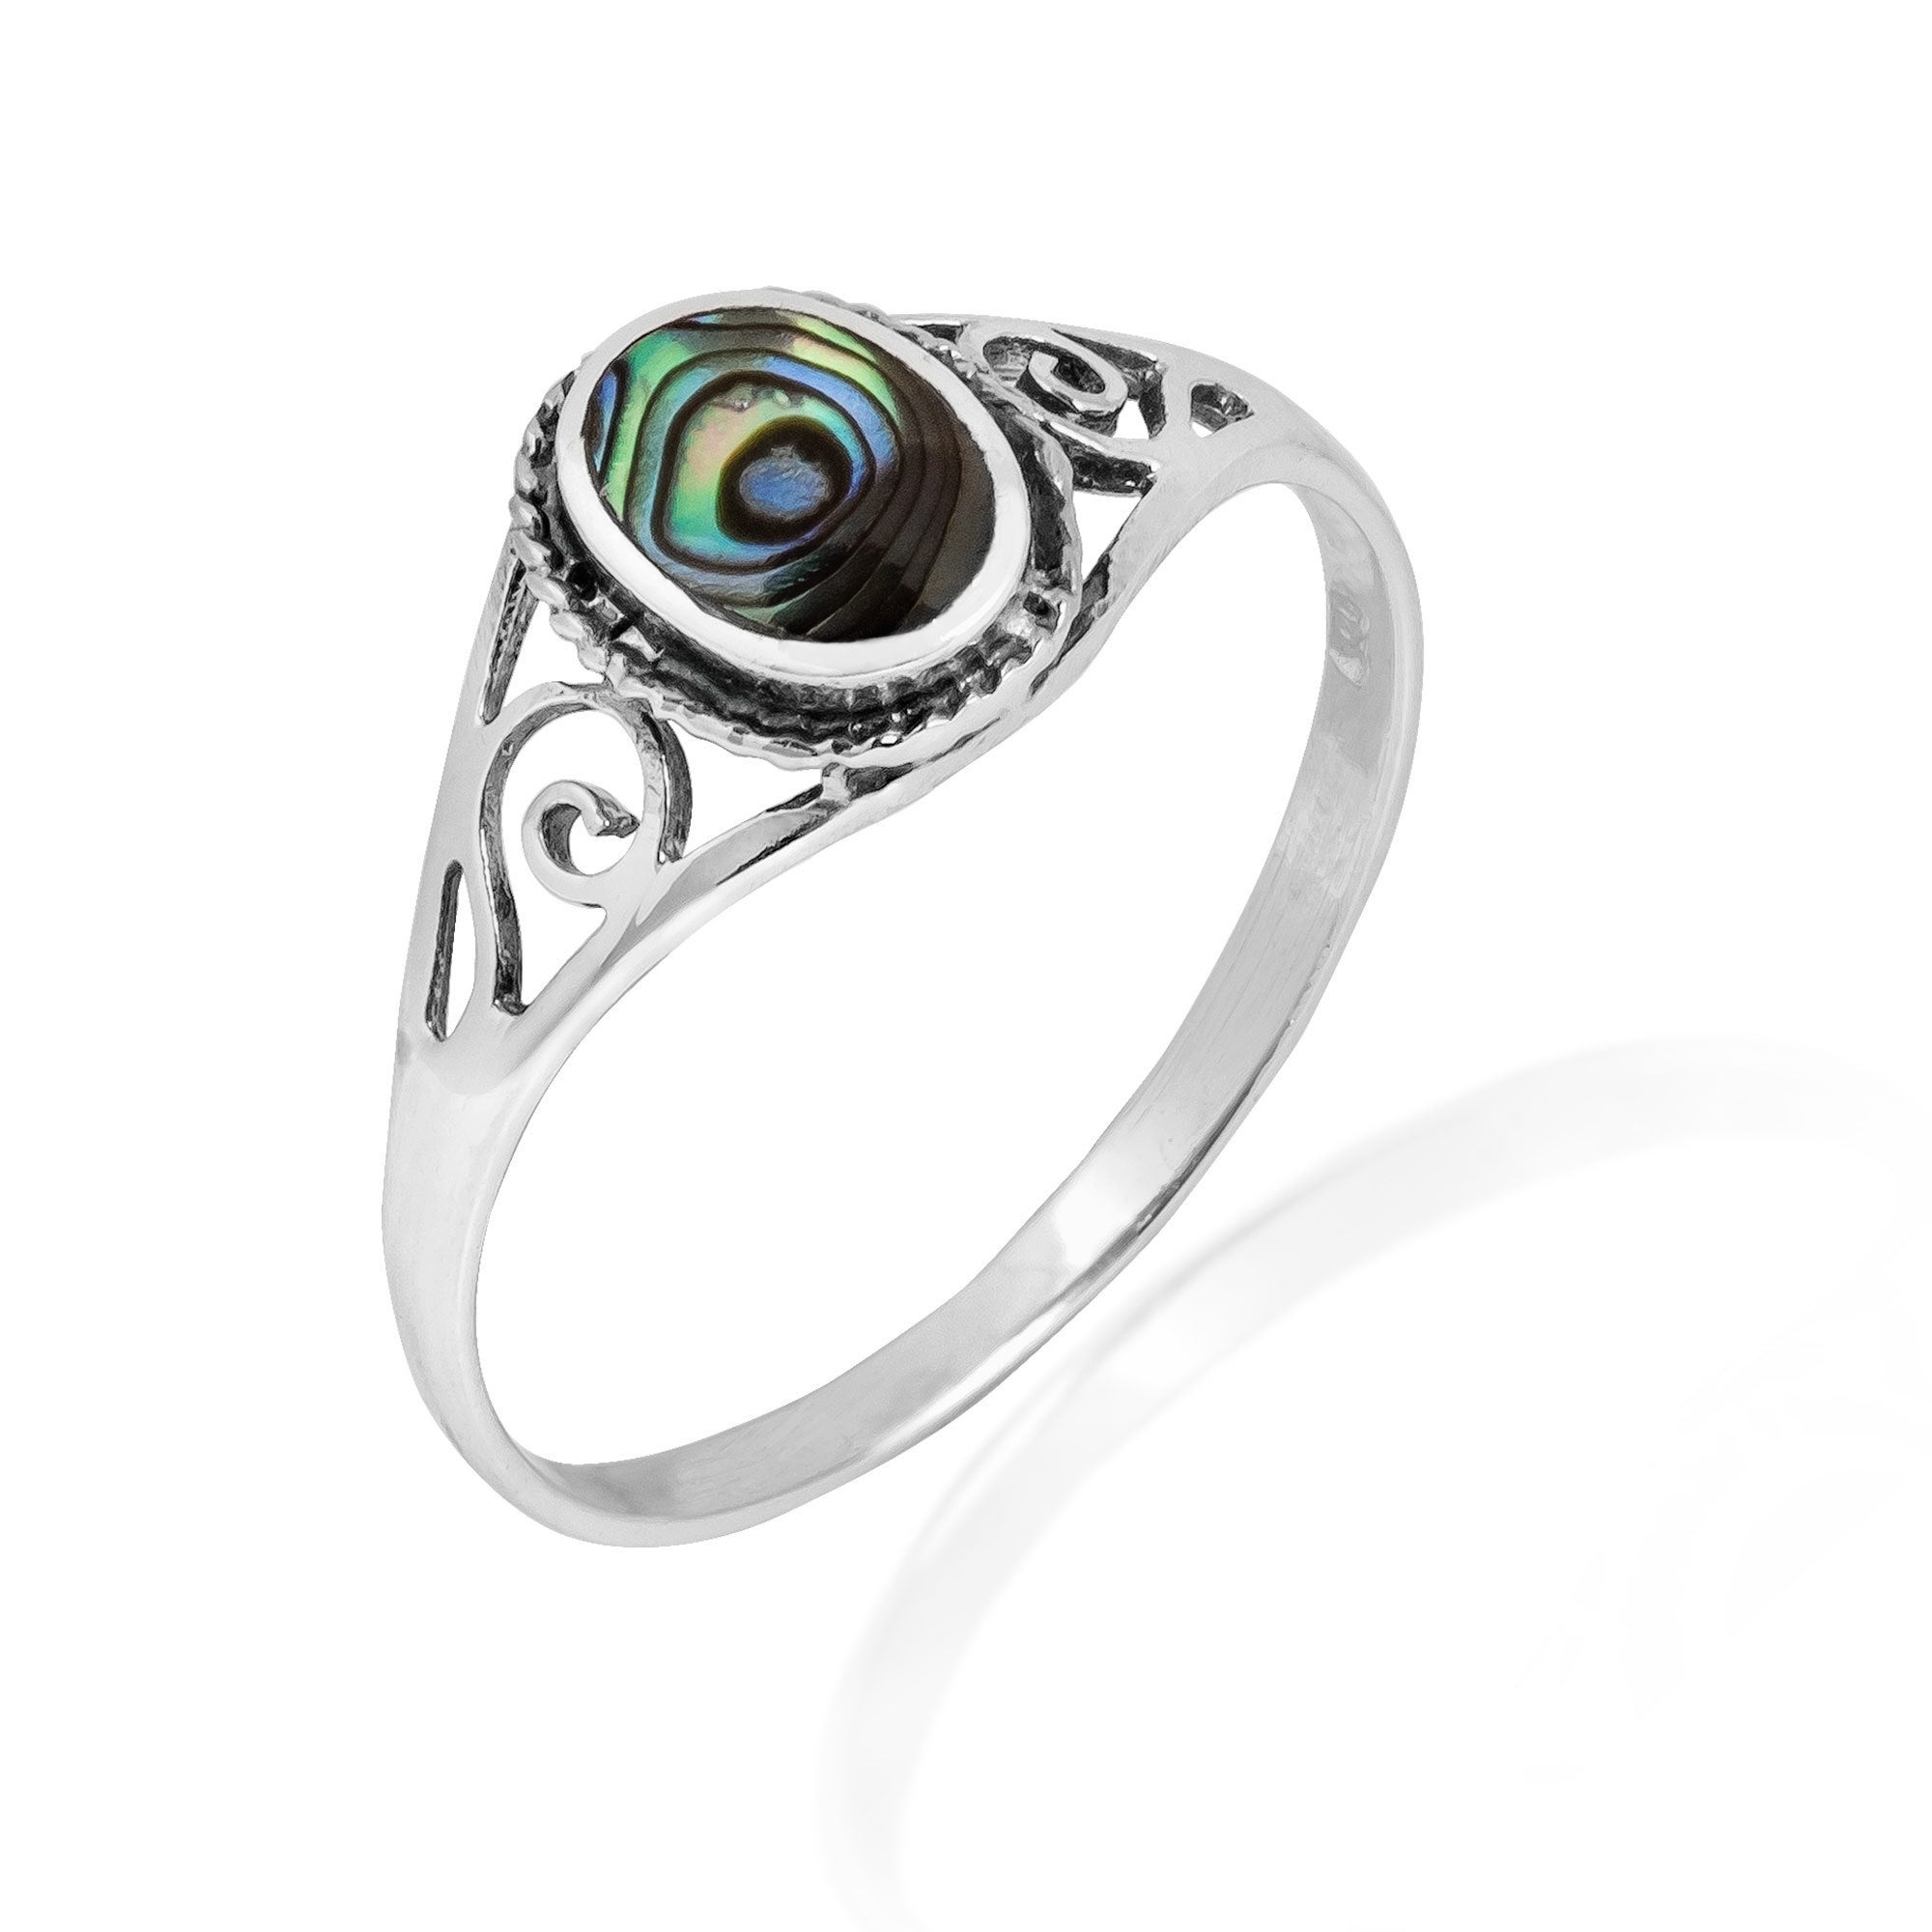 overstock abalone product com rings sterling watches shipping over ring handmade on jewelry orders free thailand swirl vintage oval silver wedding